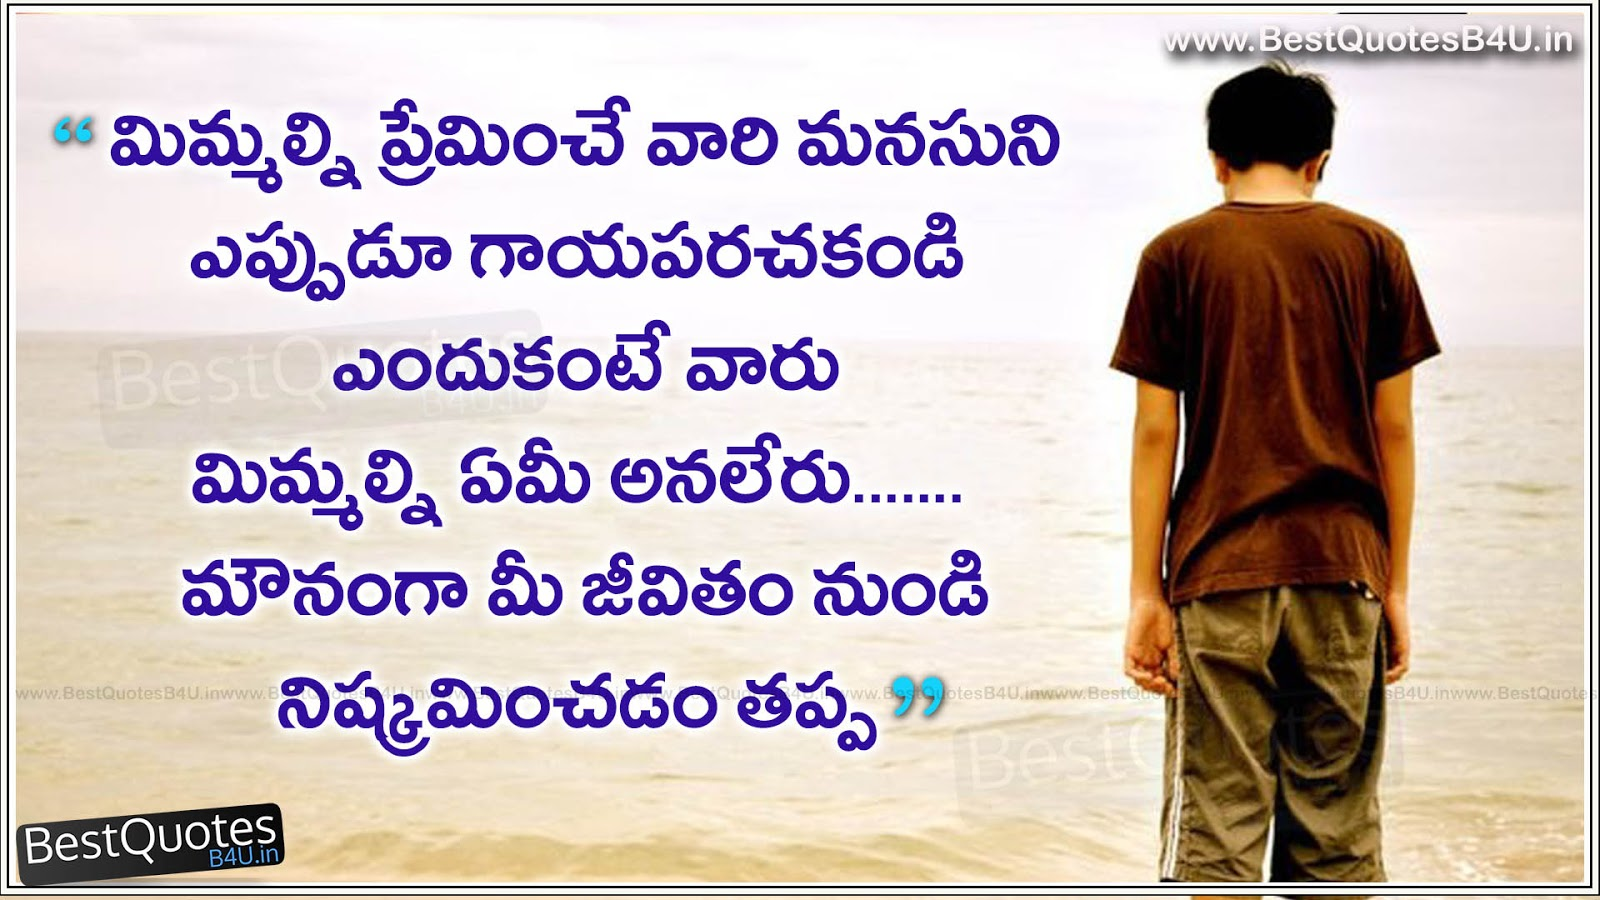 8 quotes in telugu love quotes in telugu beautiful telugu status love